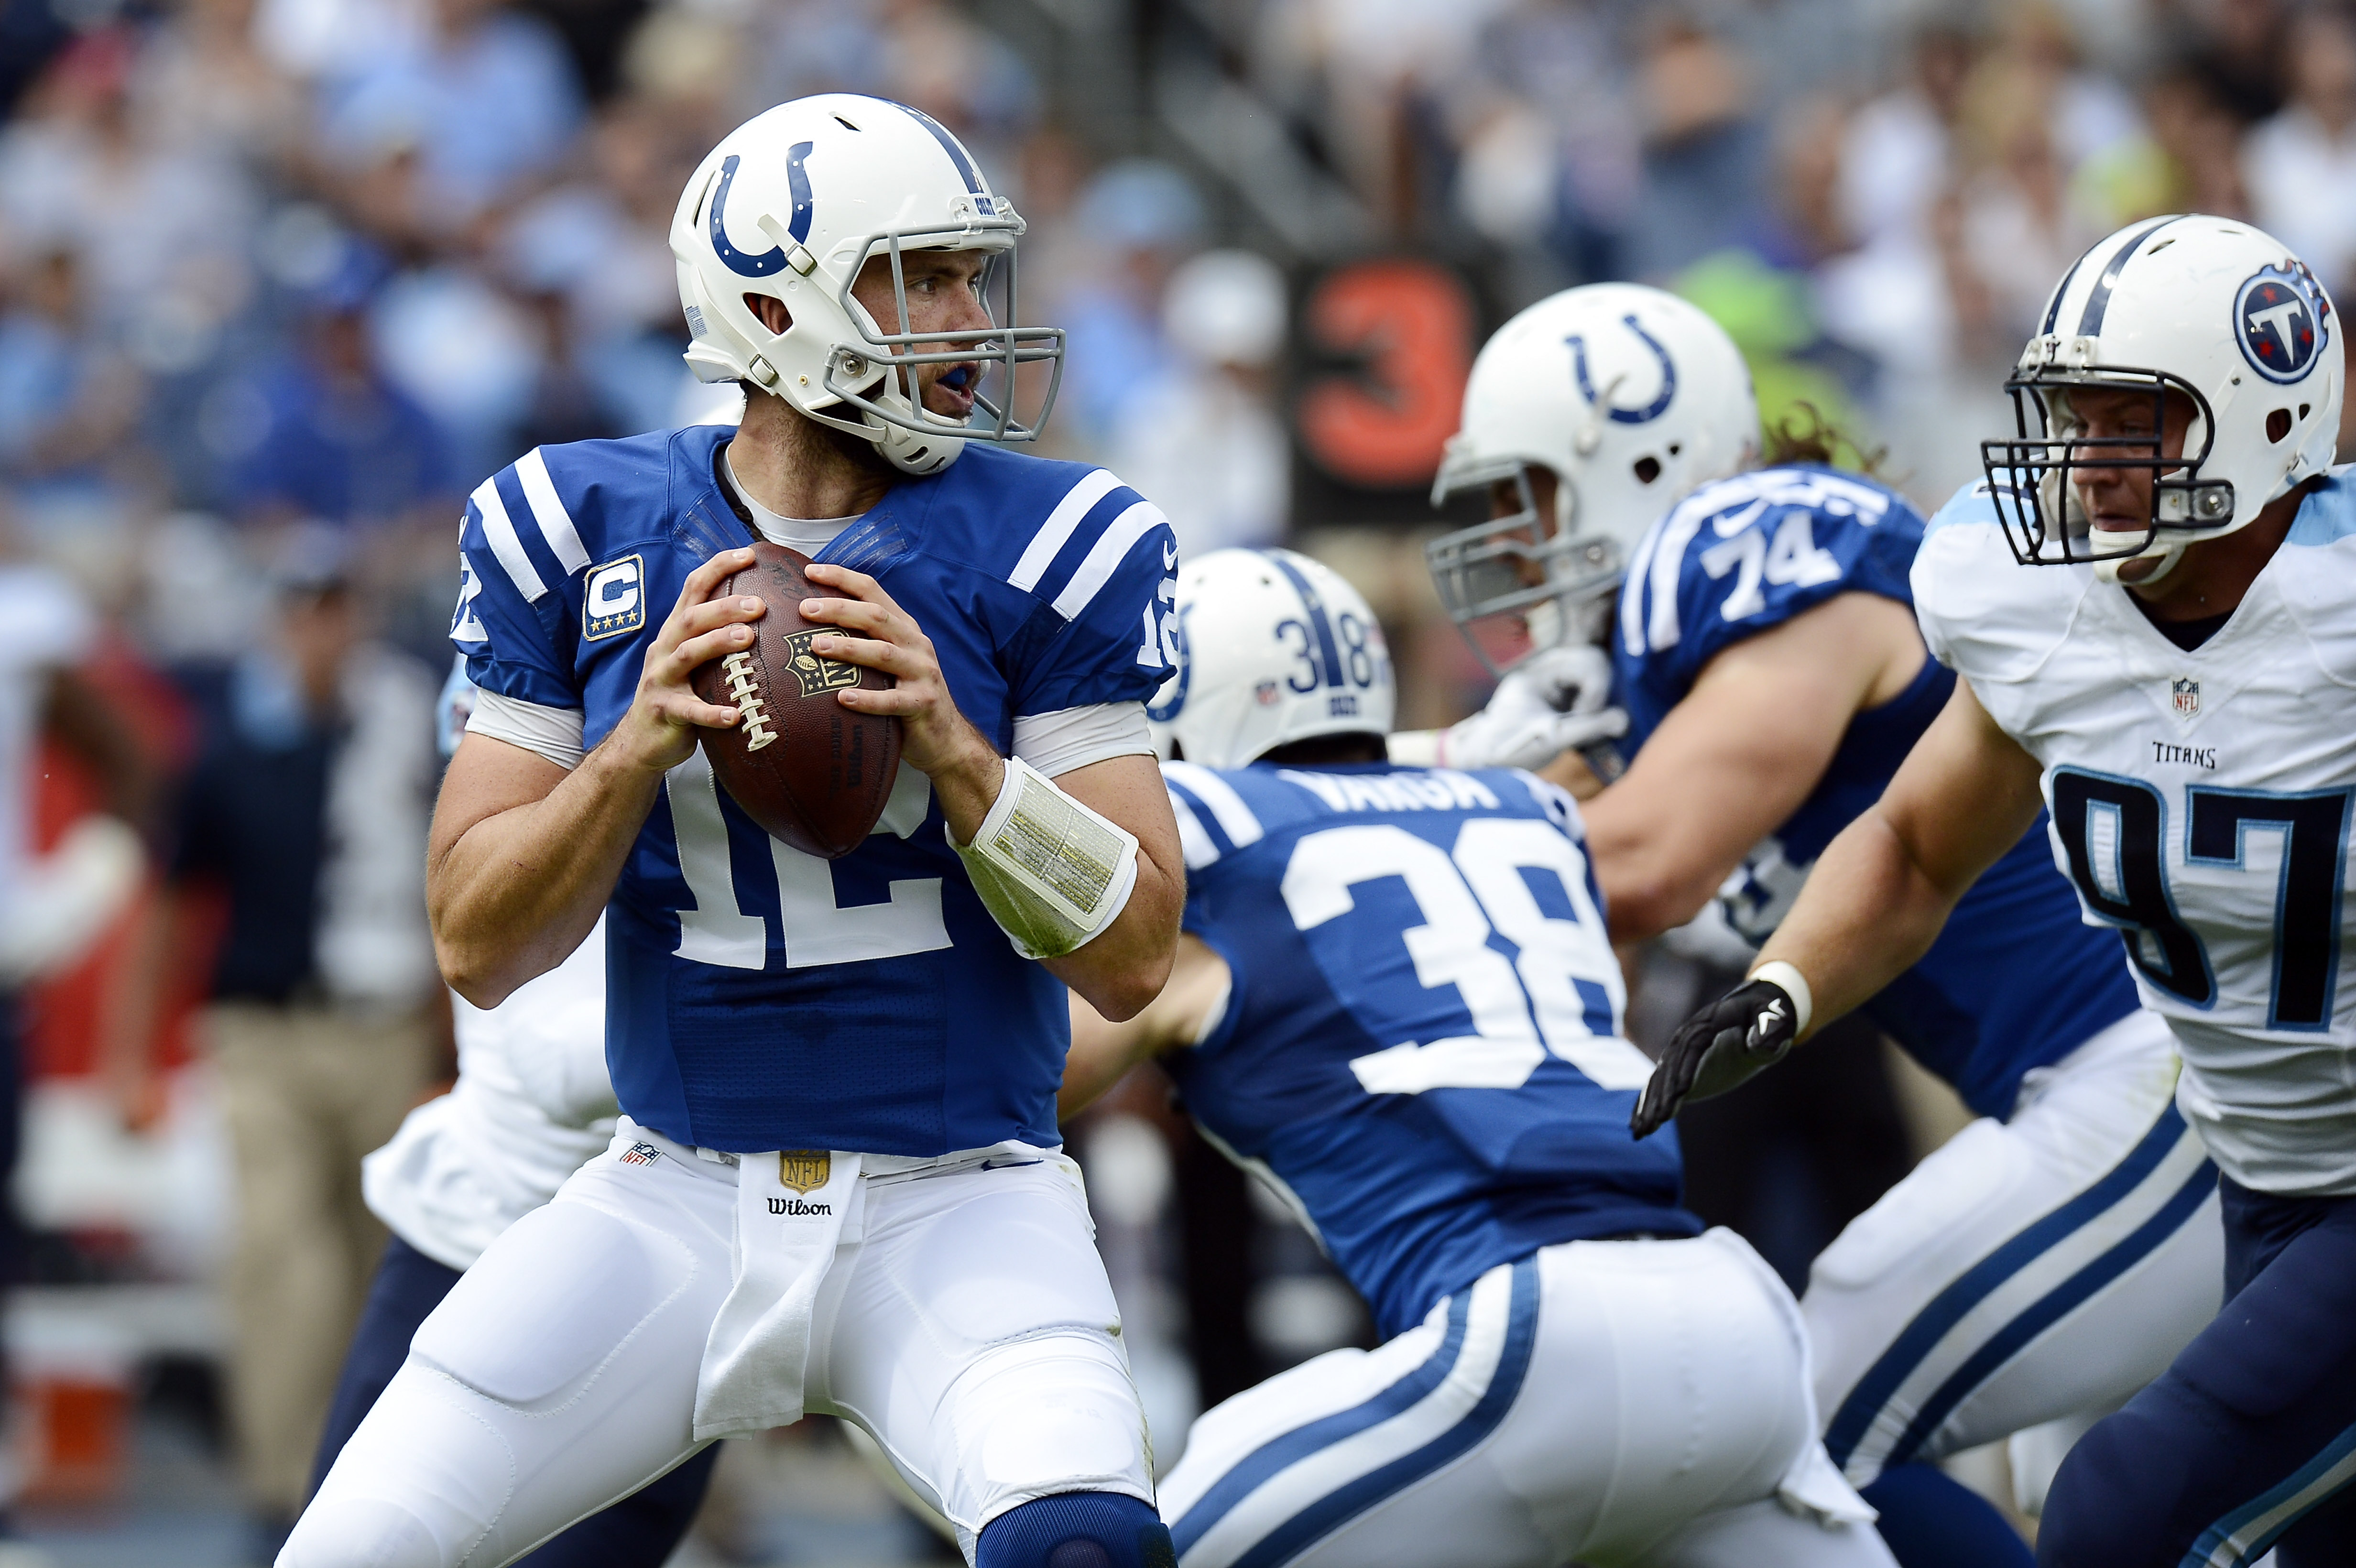 Indianapolis Colts quarterback Andrew Luck (12) passes against the Tennessee Titans in the first half of an NFL football game Sunday, Sept. 27, 2015, in Nashville, Tenn. (AP Photo/Mark Zaleski)